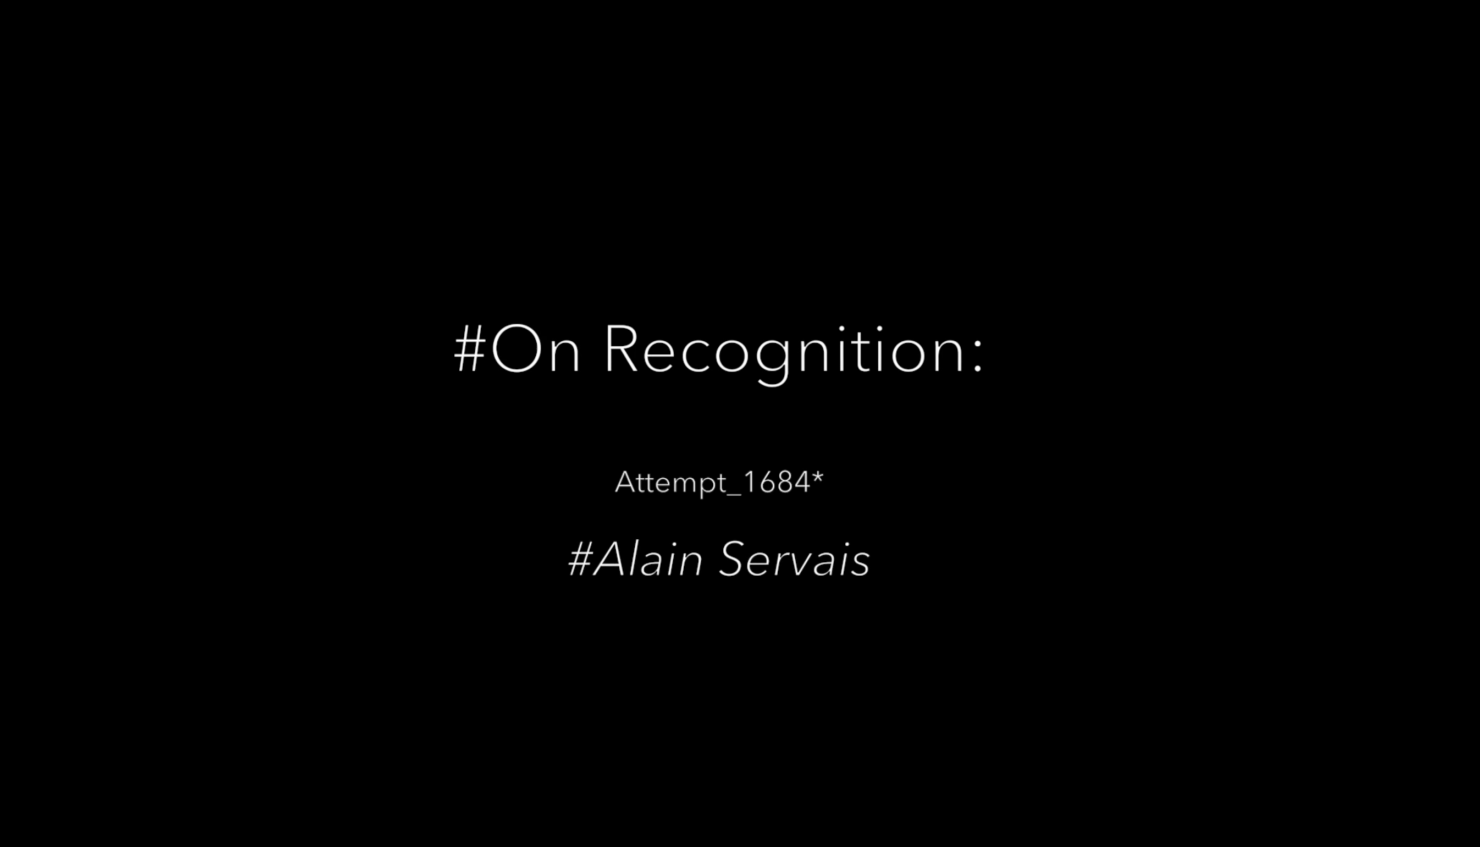 On Recognition